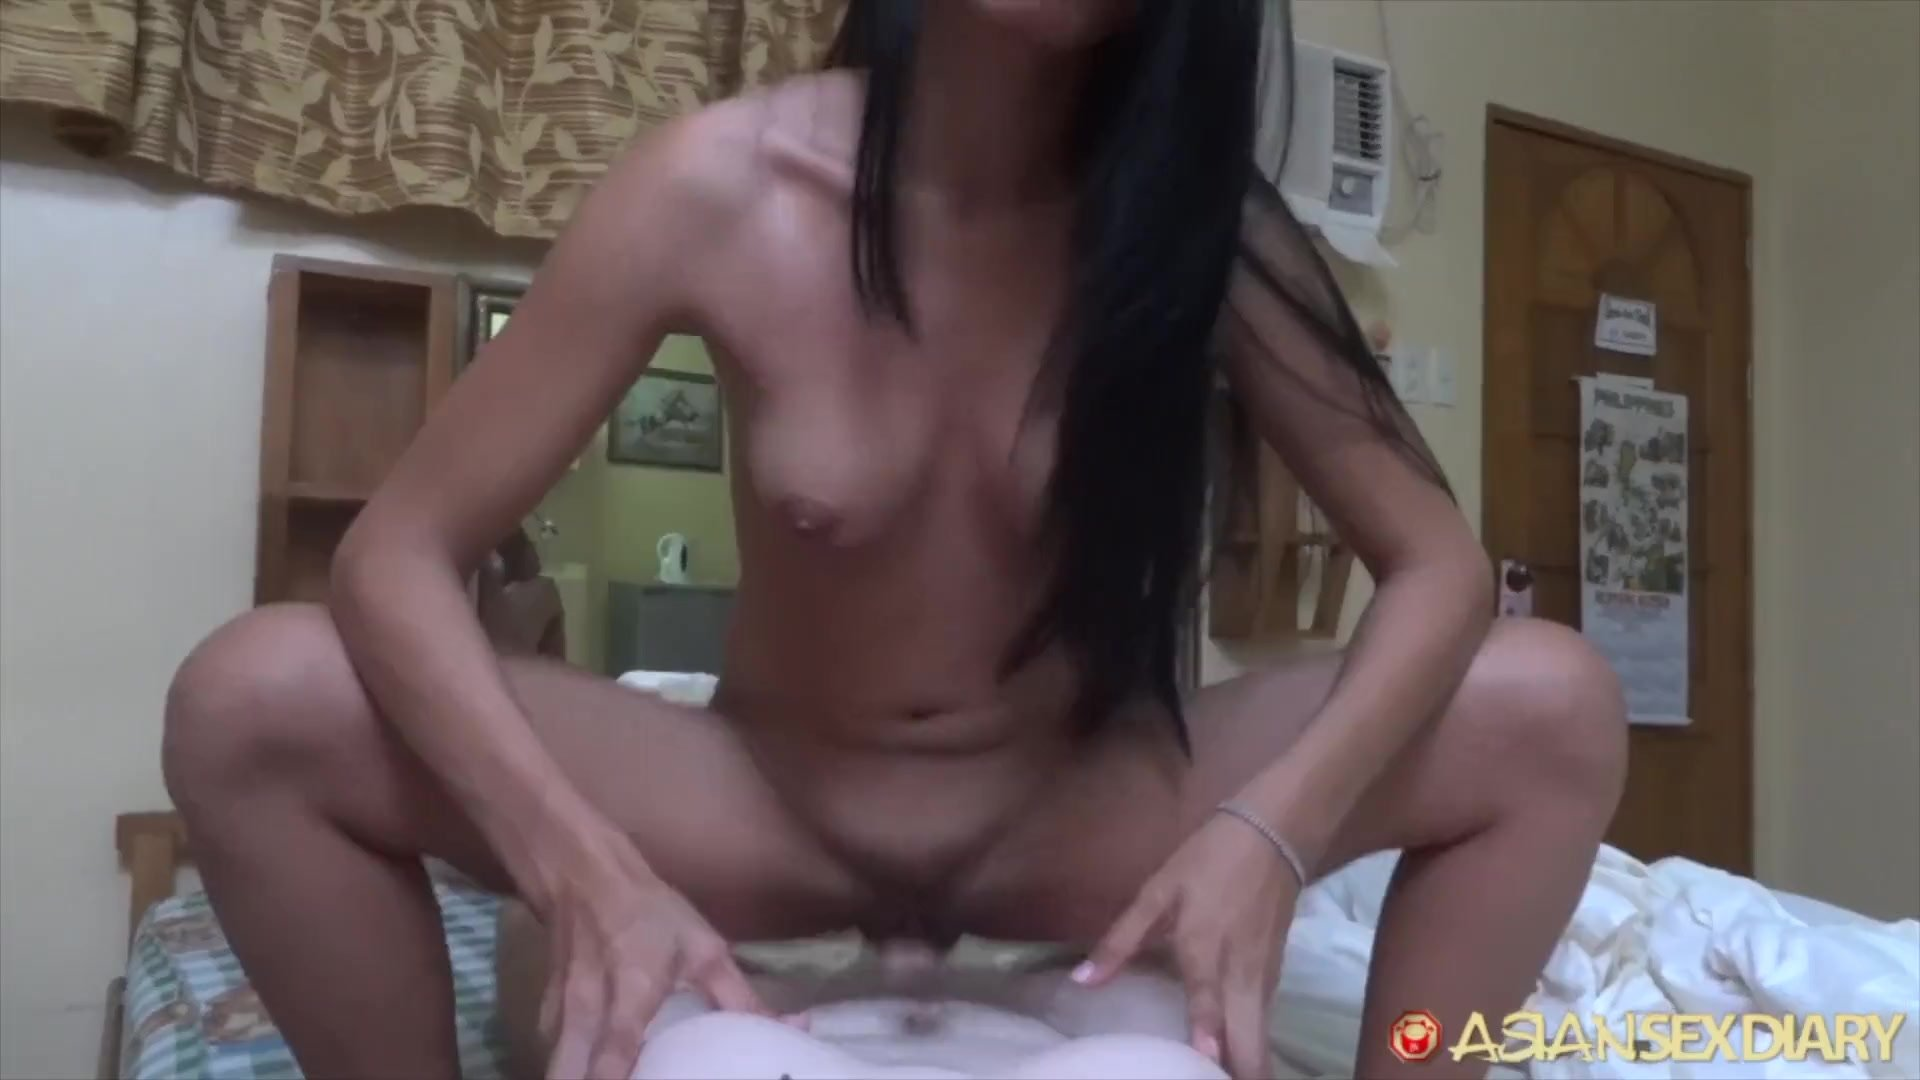 Asian Sex Diary - Asian with great body gets fucked by white tourist